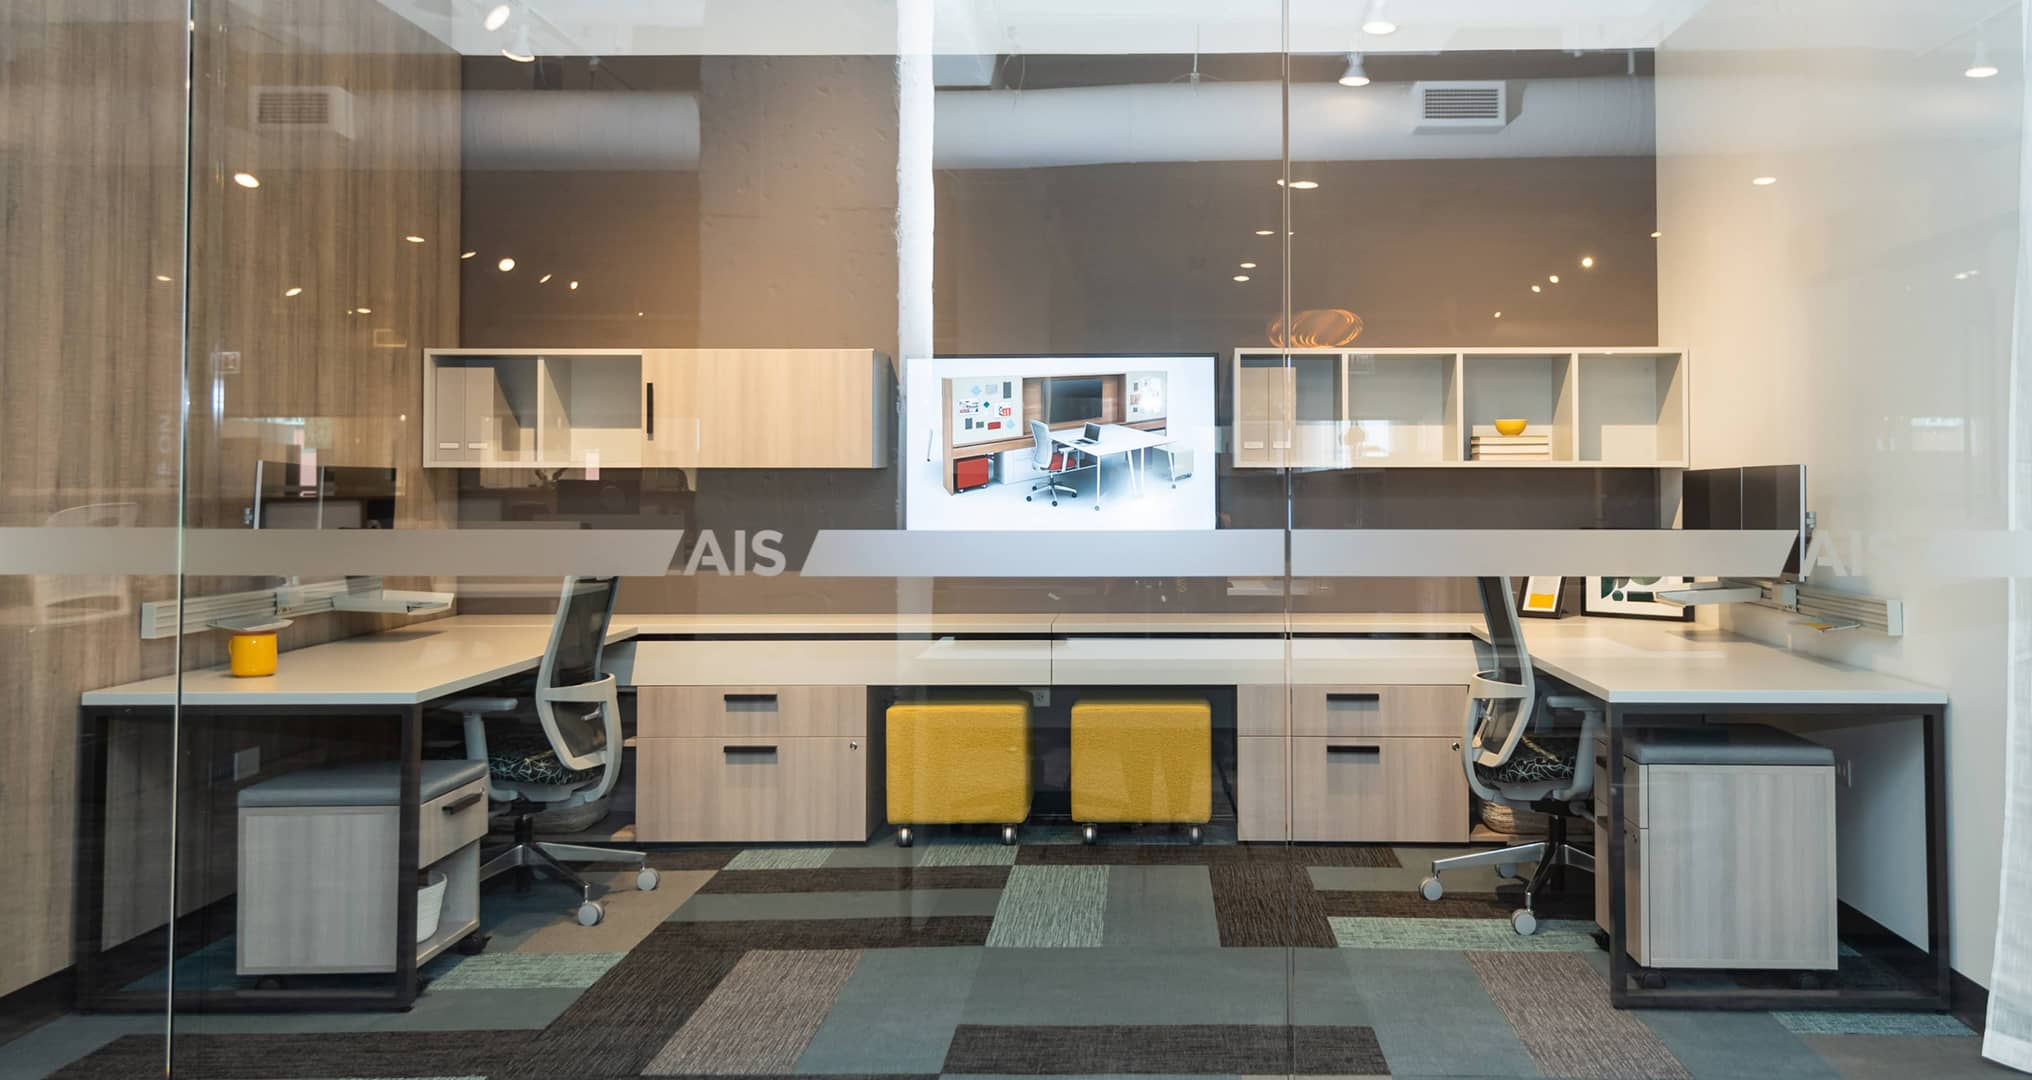 Office cubicles with yellow accents and two office spaces